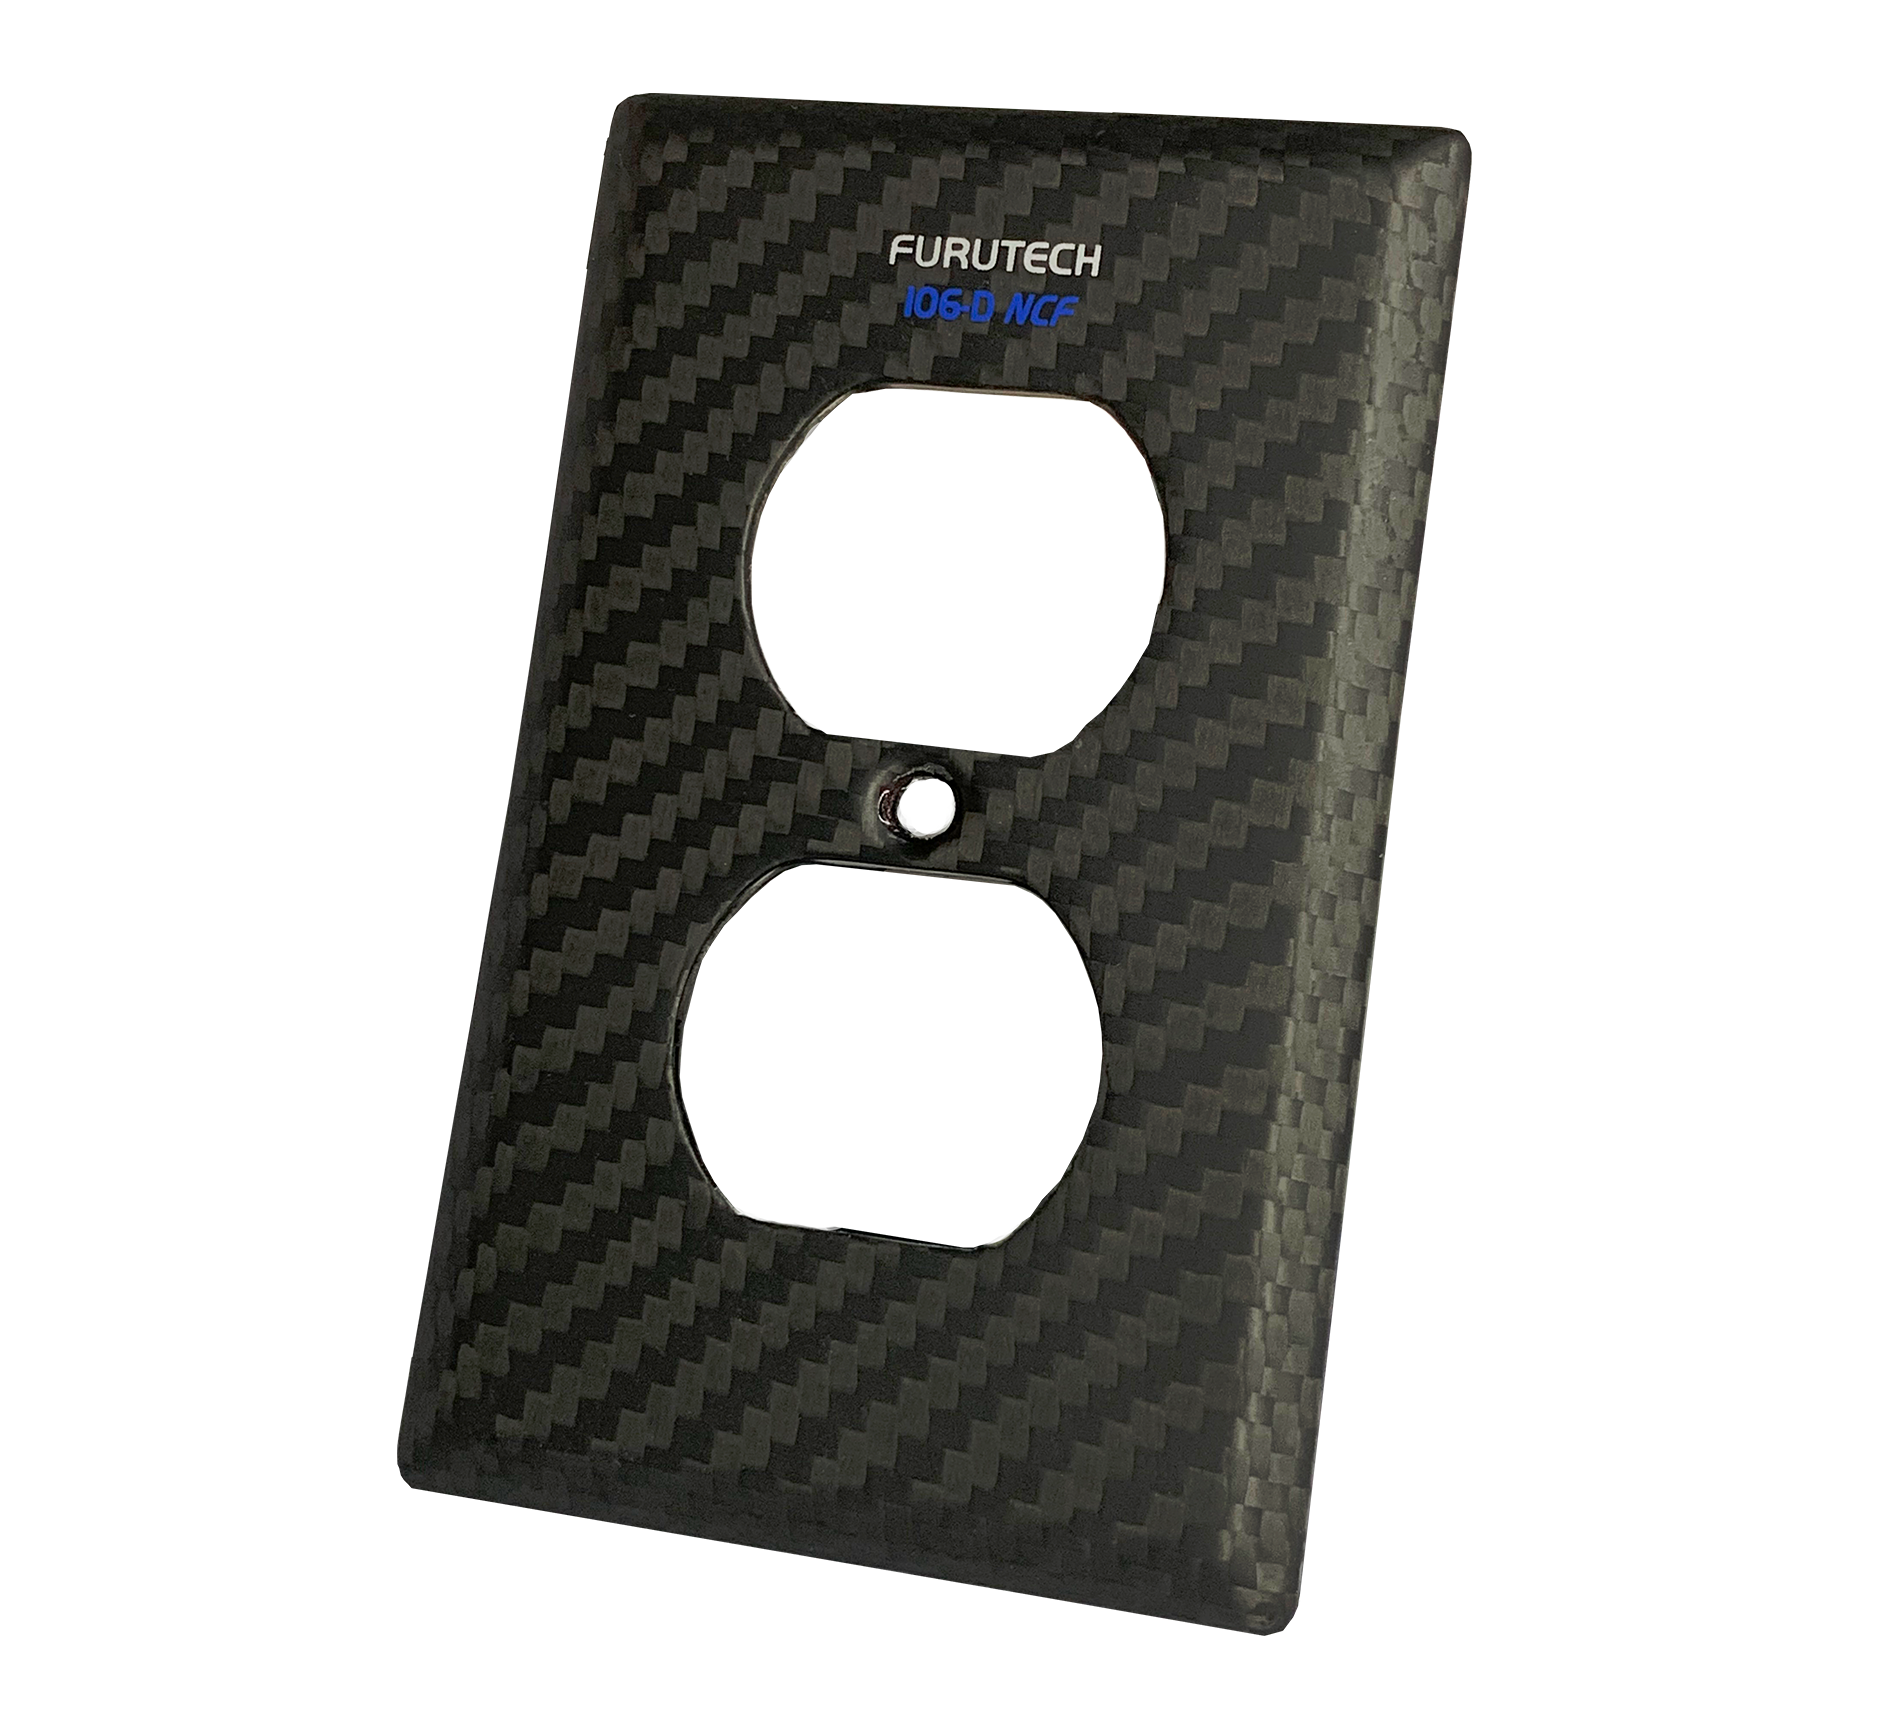 Furutech GTX High Performance Wall Plate New